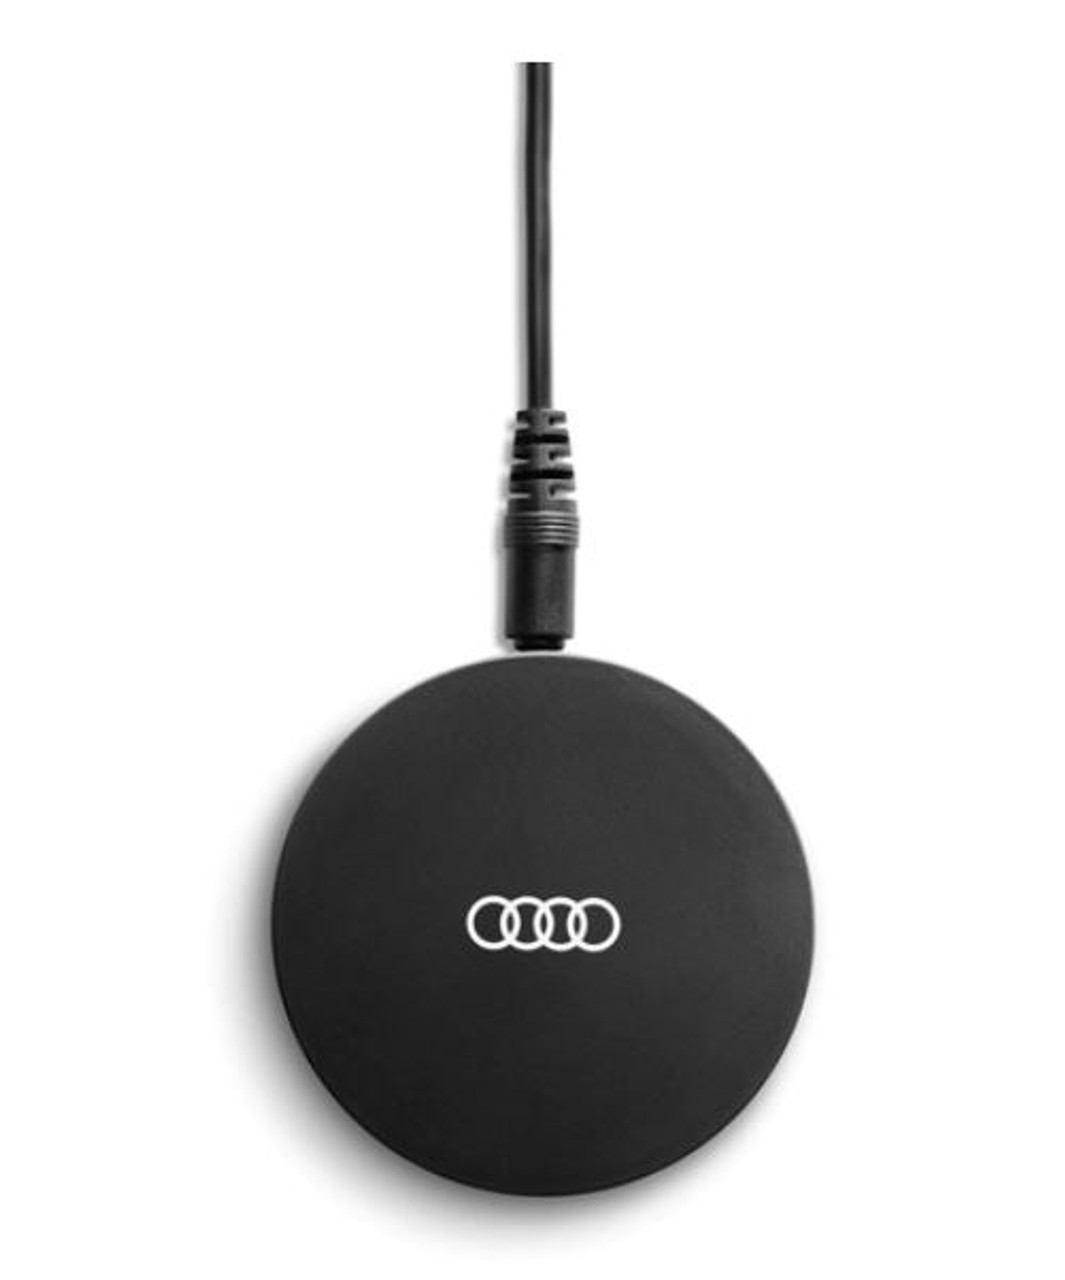 Genuine Audi Wireless charging pad, for phones with wireless charging 8W0051191